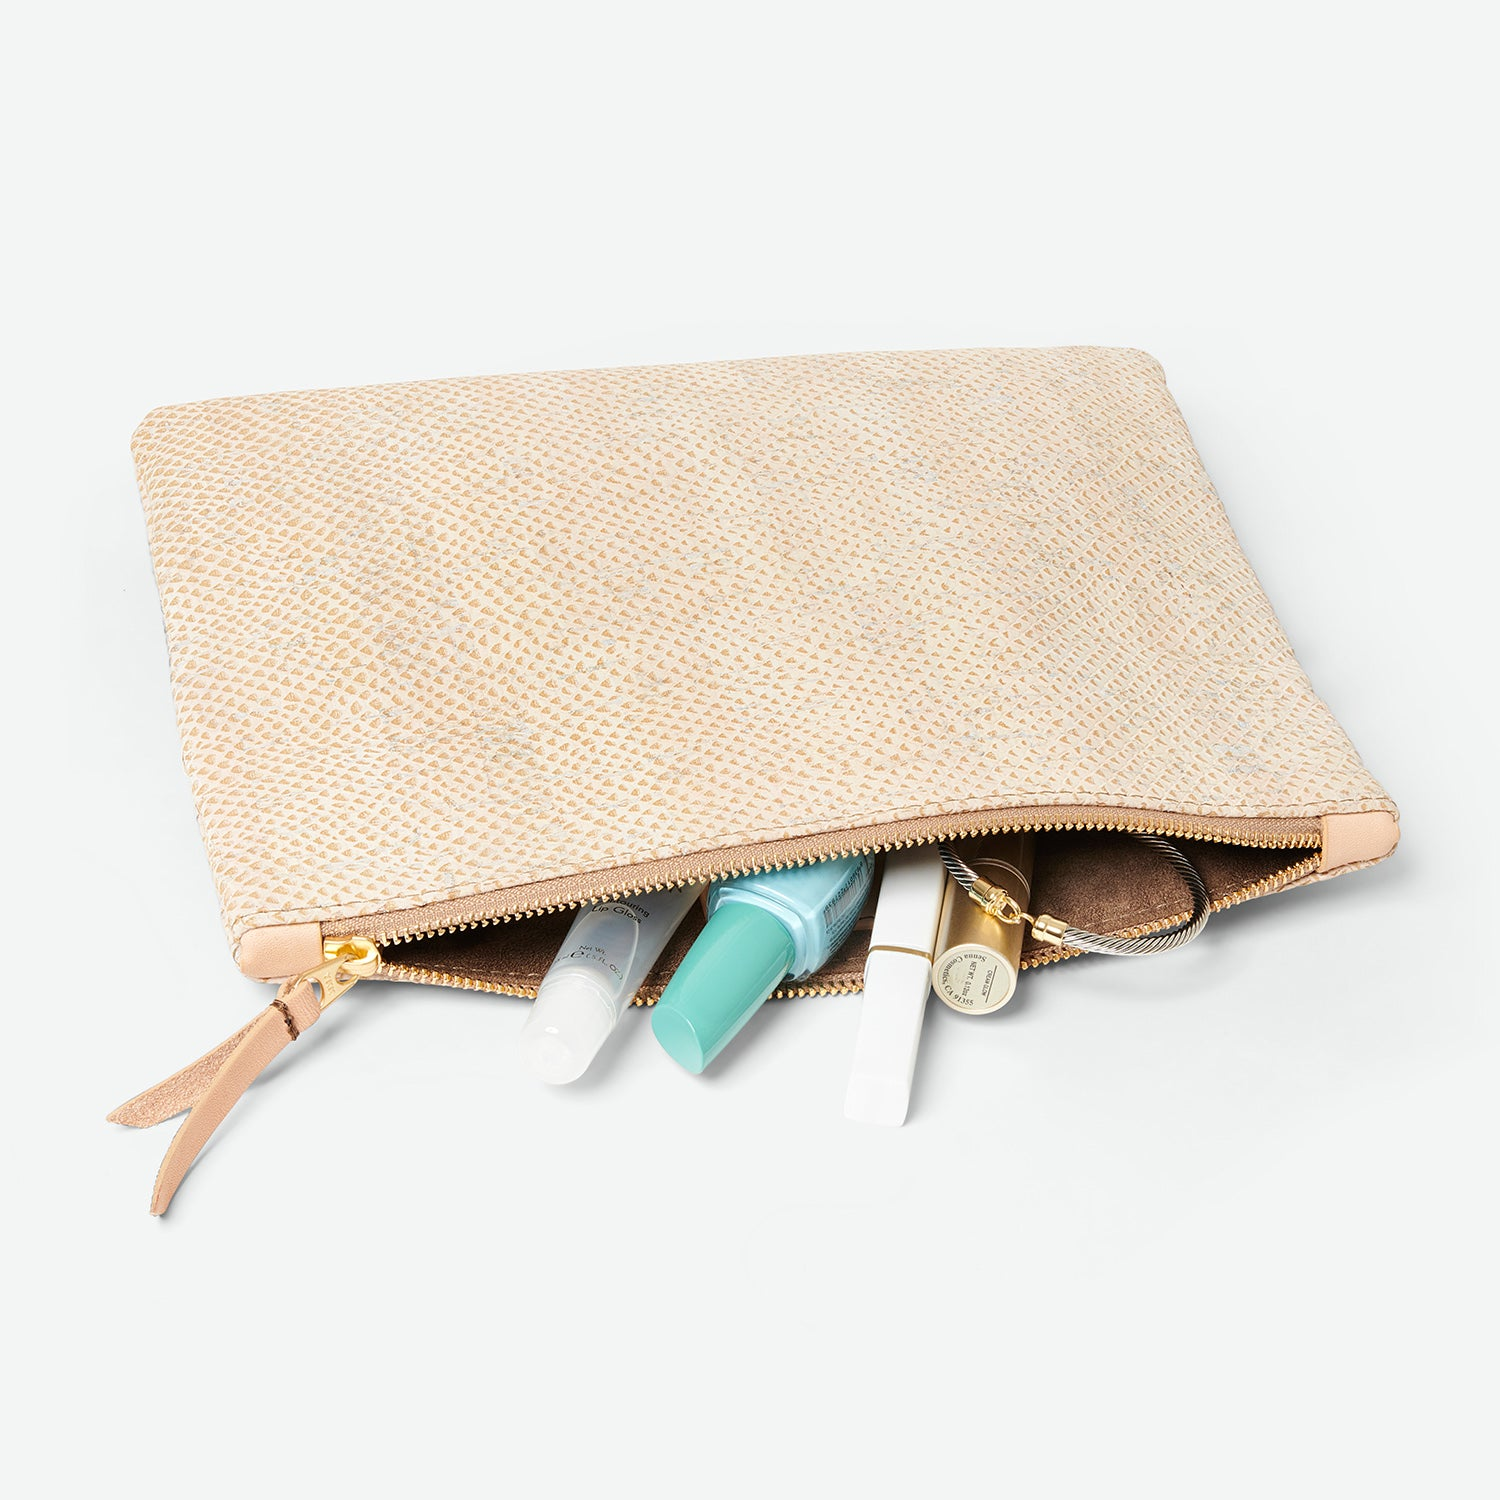 cork accessories bag